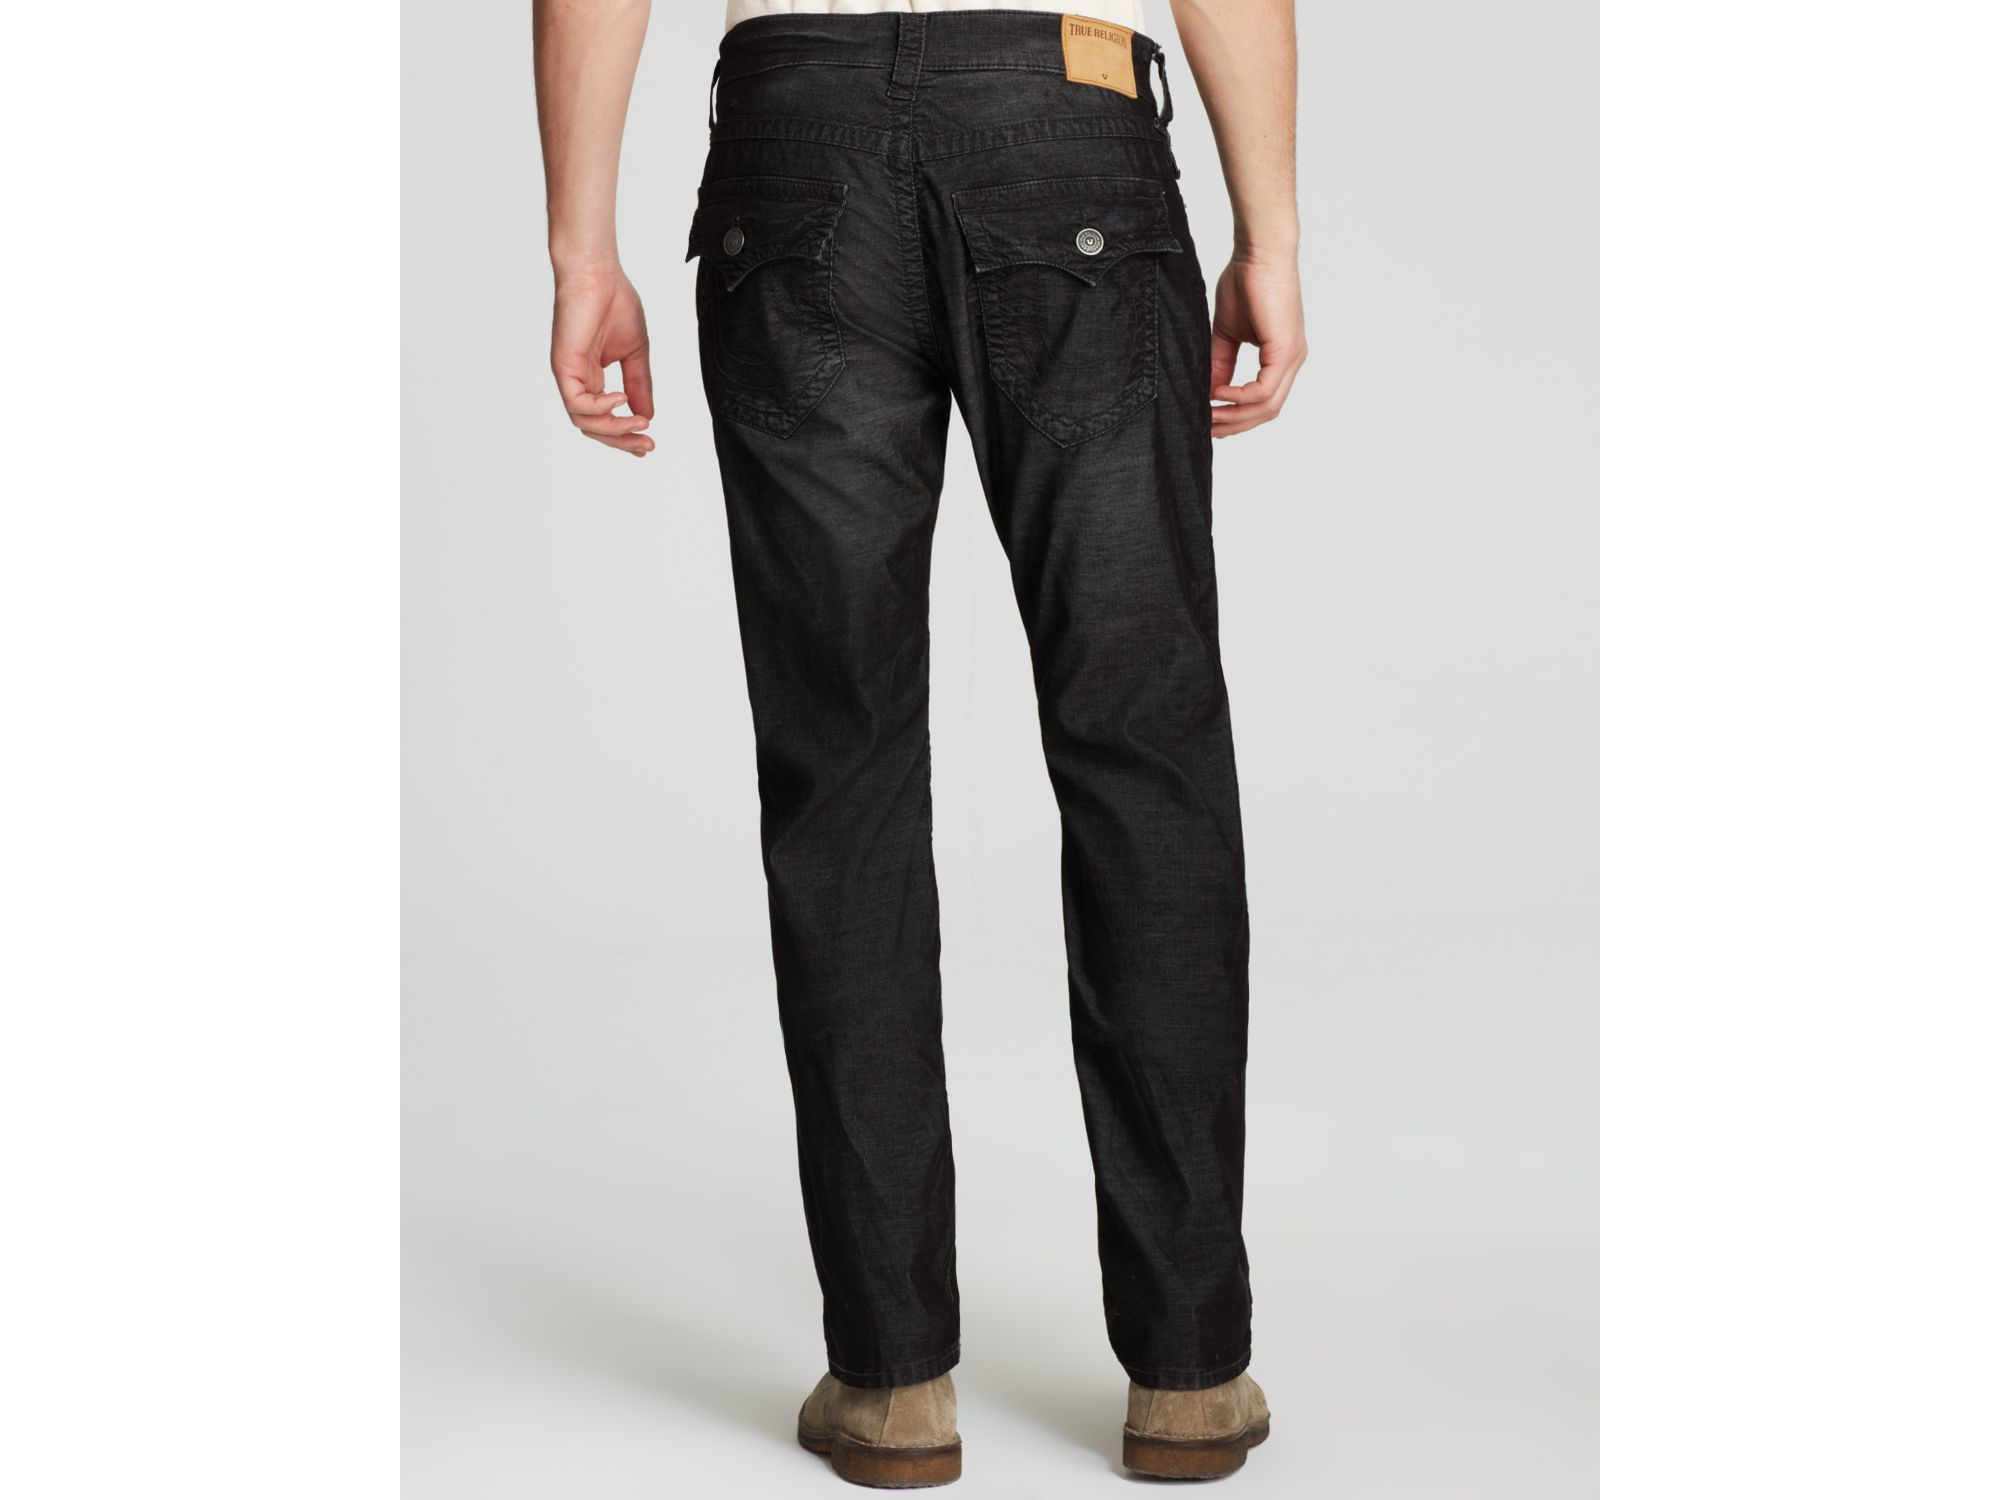 Lyst - True Religion Jeans - Ricky Relaxed Fit Cords in ...